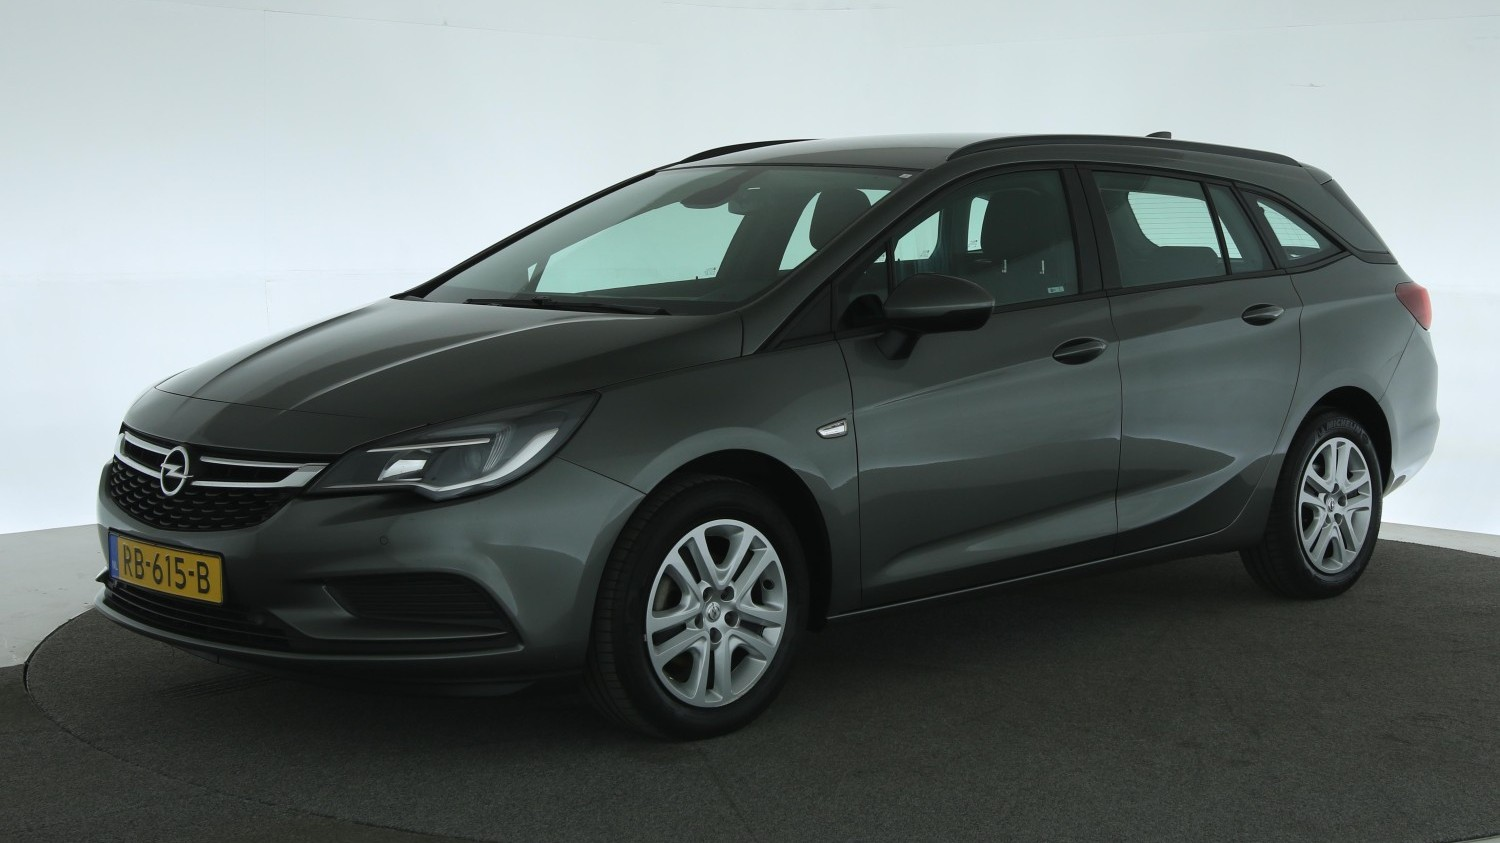 Opel Astra Station 2017 RB-615-B 1